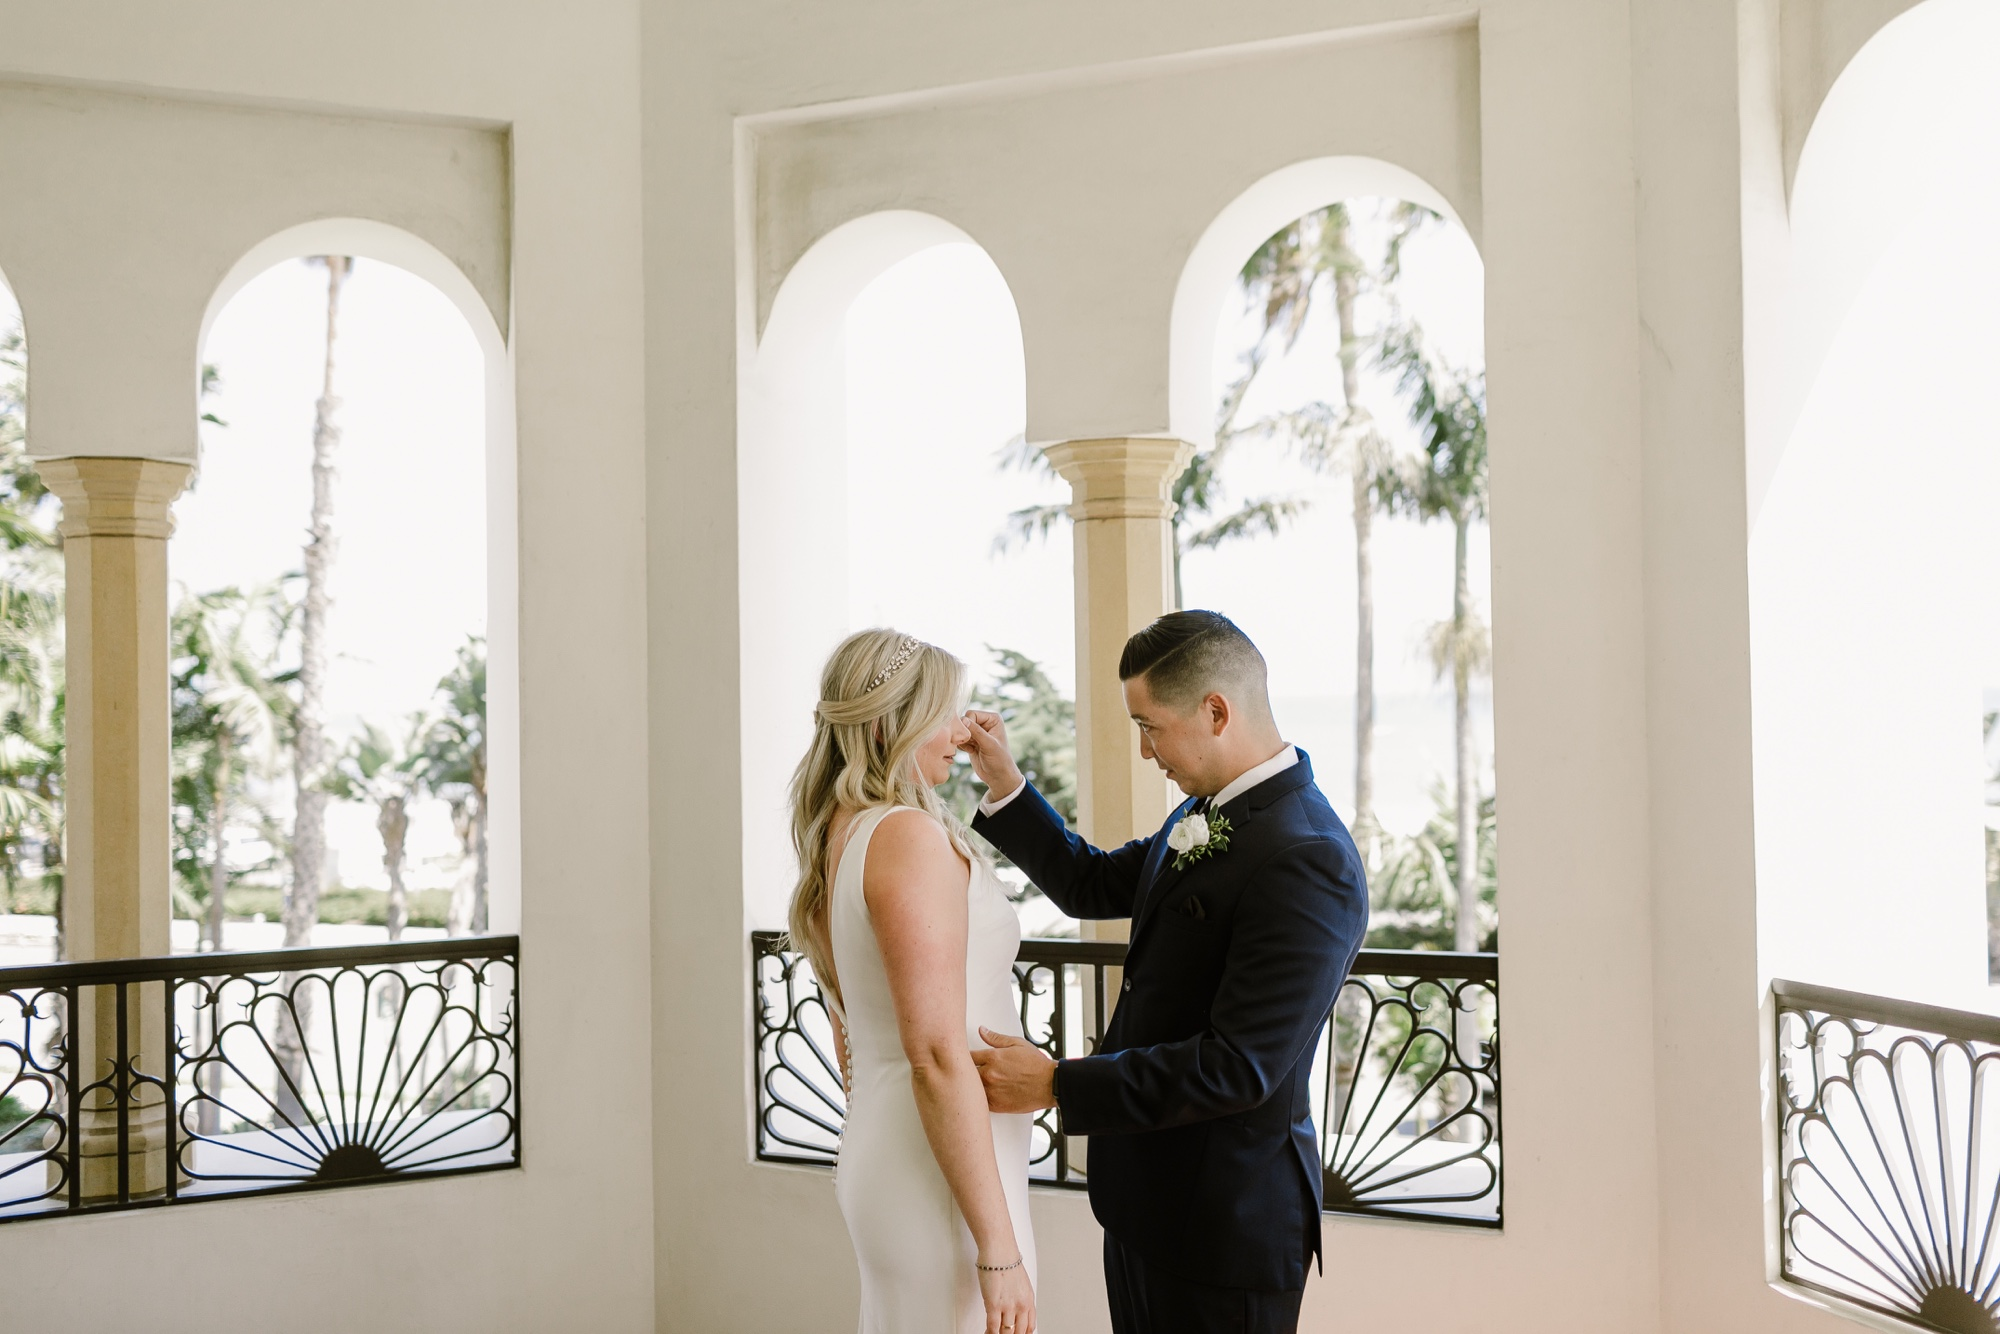 13_Ally and Tommy's Wedding-309.jpg